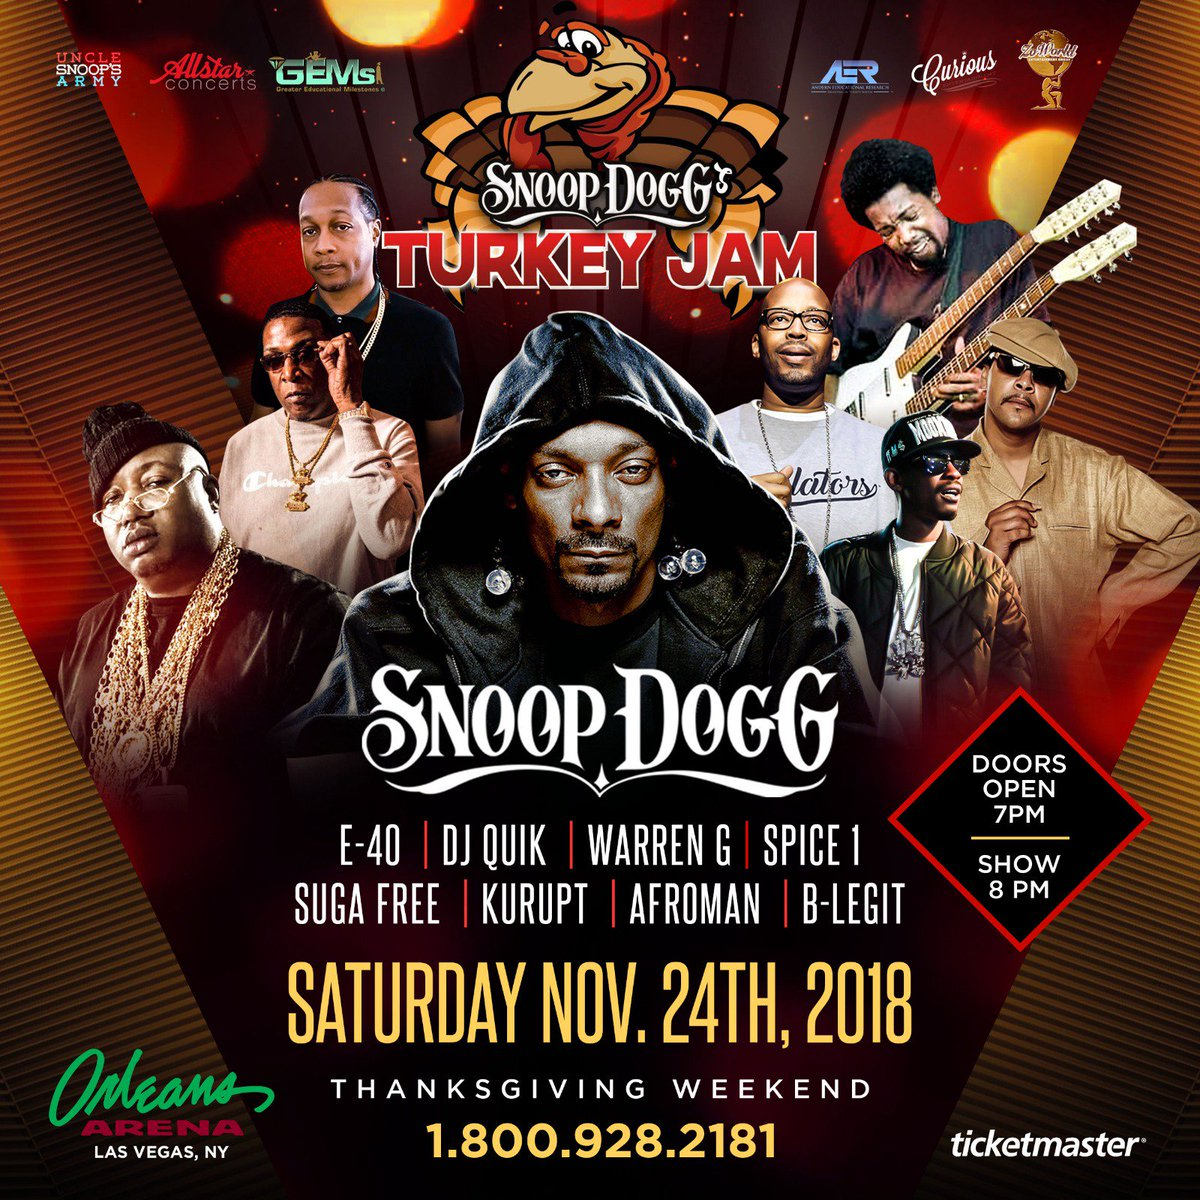 Las Vegas come kick it wit me n the homies this Sat at @orleanscasino for the Snoop Dogg Turkey Jam! https://t.co/jCK1e6rICW